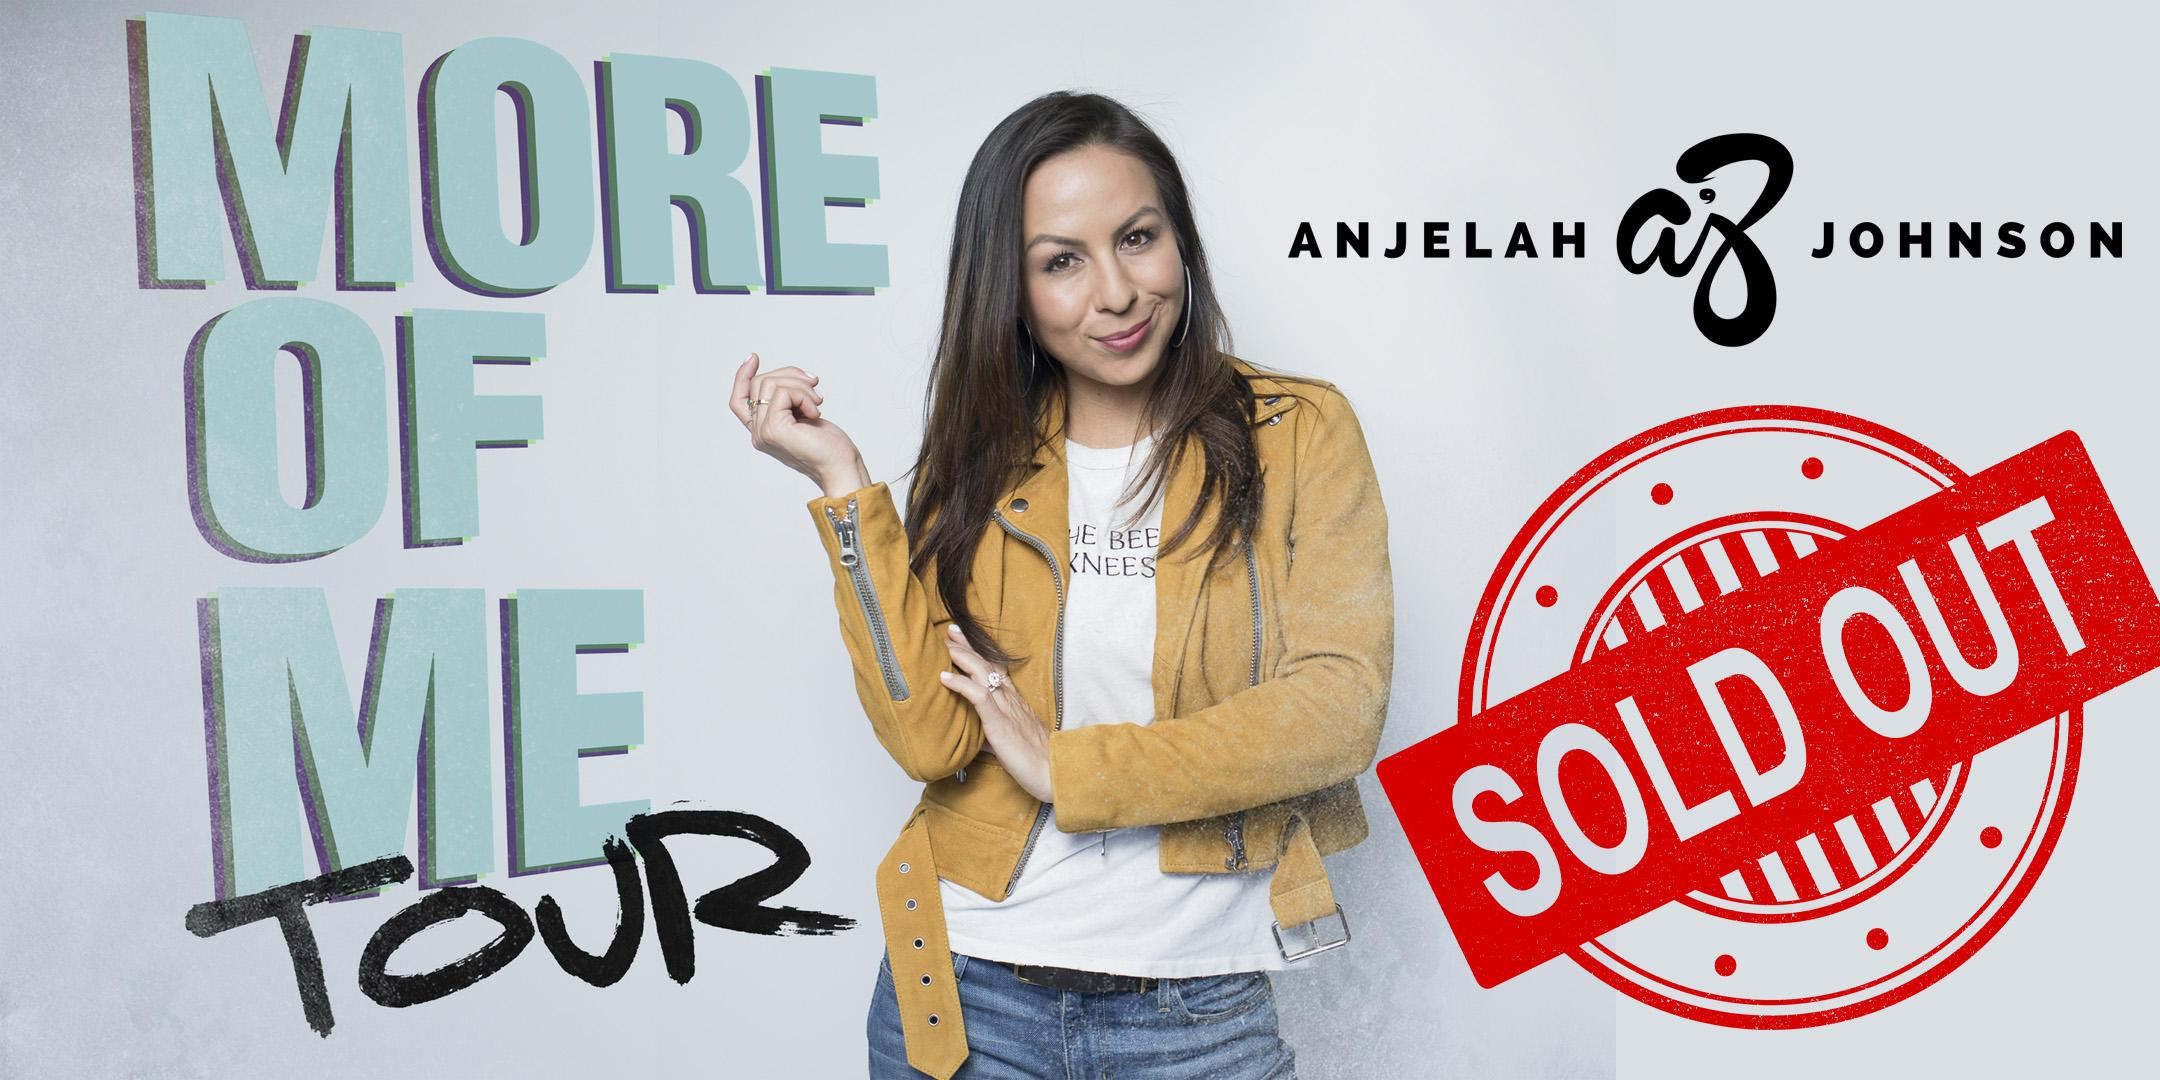 Anjelah Johnson - Sunday - March 3rd - 7:30 pm Show SOLD OUT